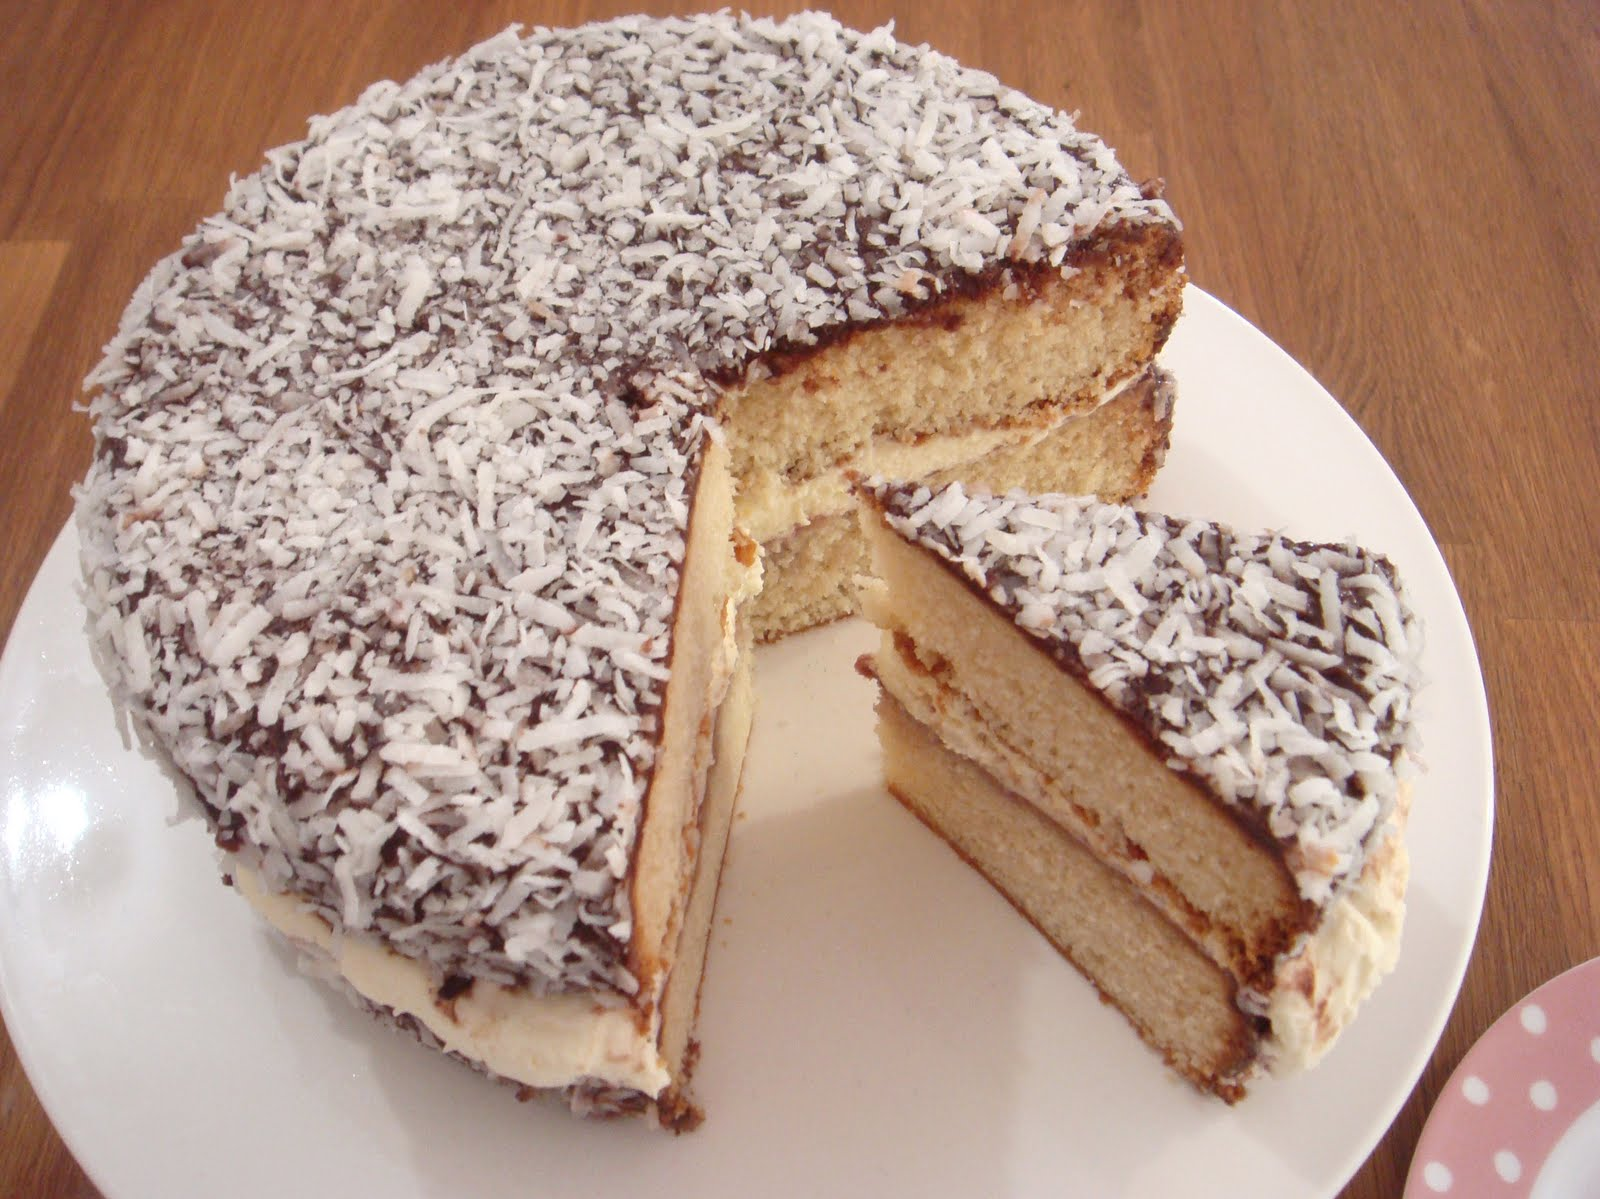 ... the kind of cake usually used to make lamingtons but it is a really